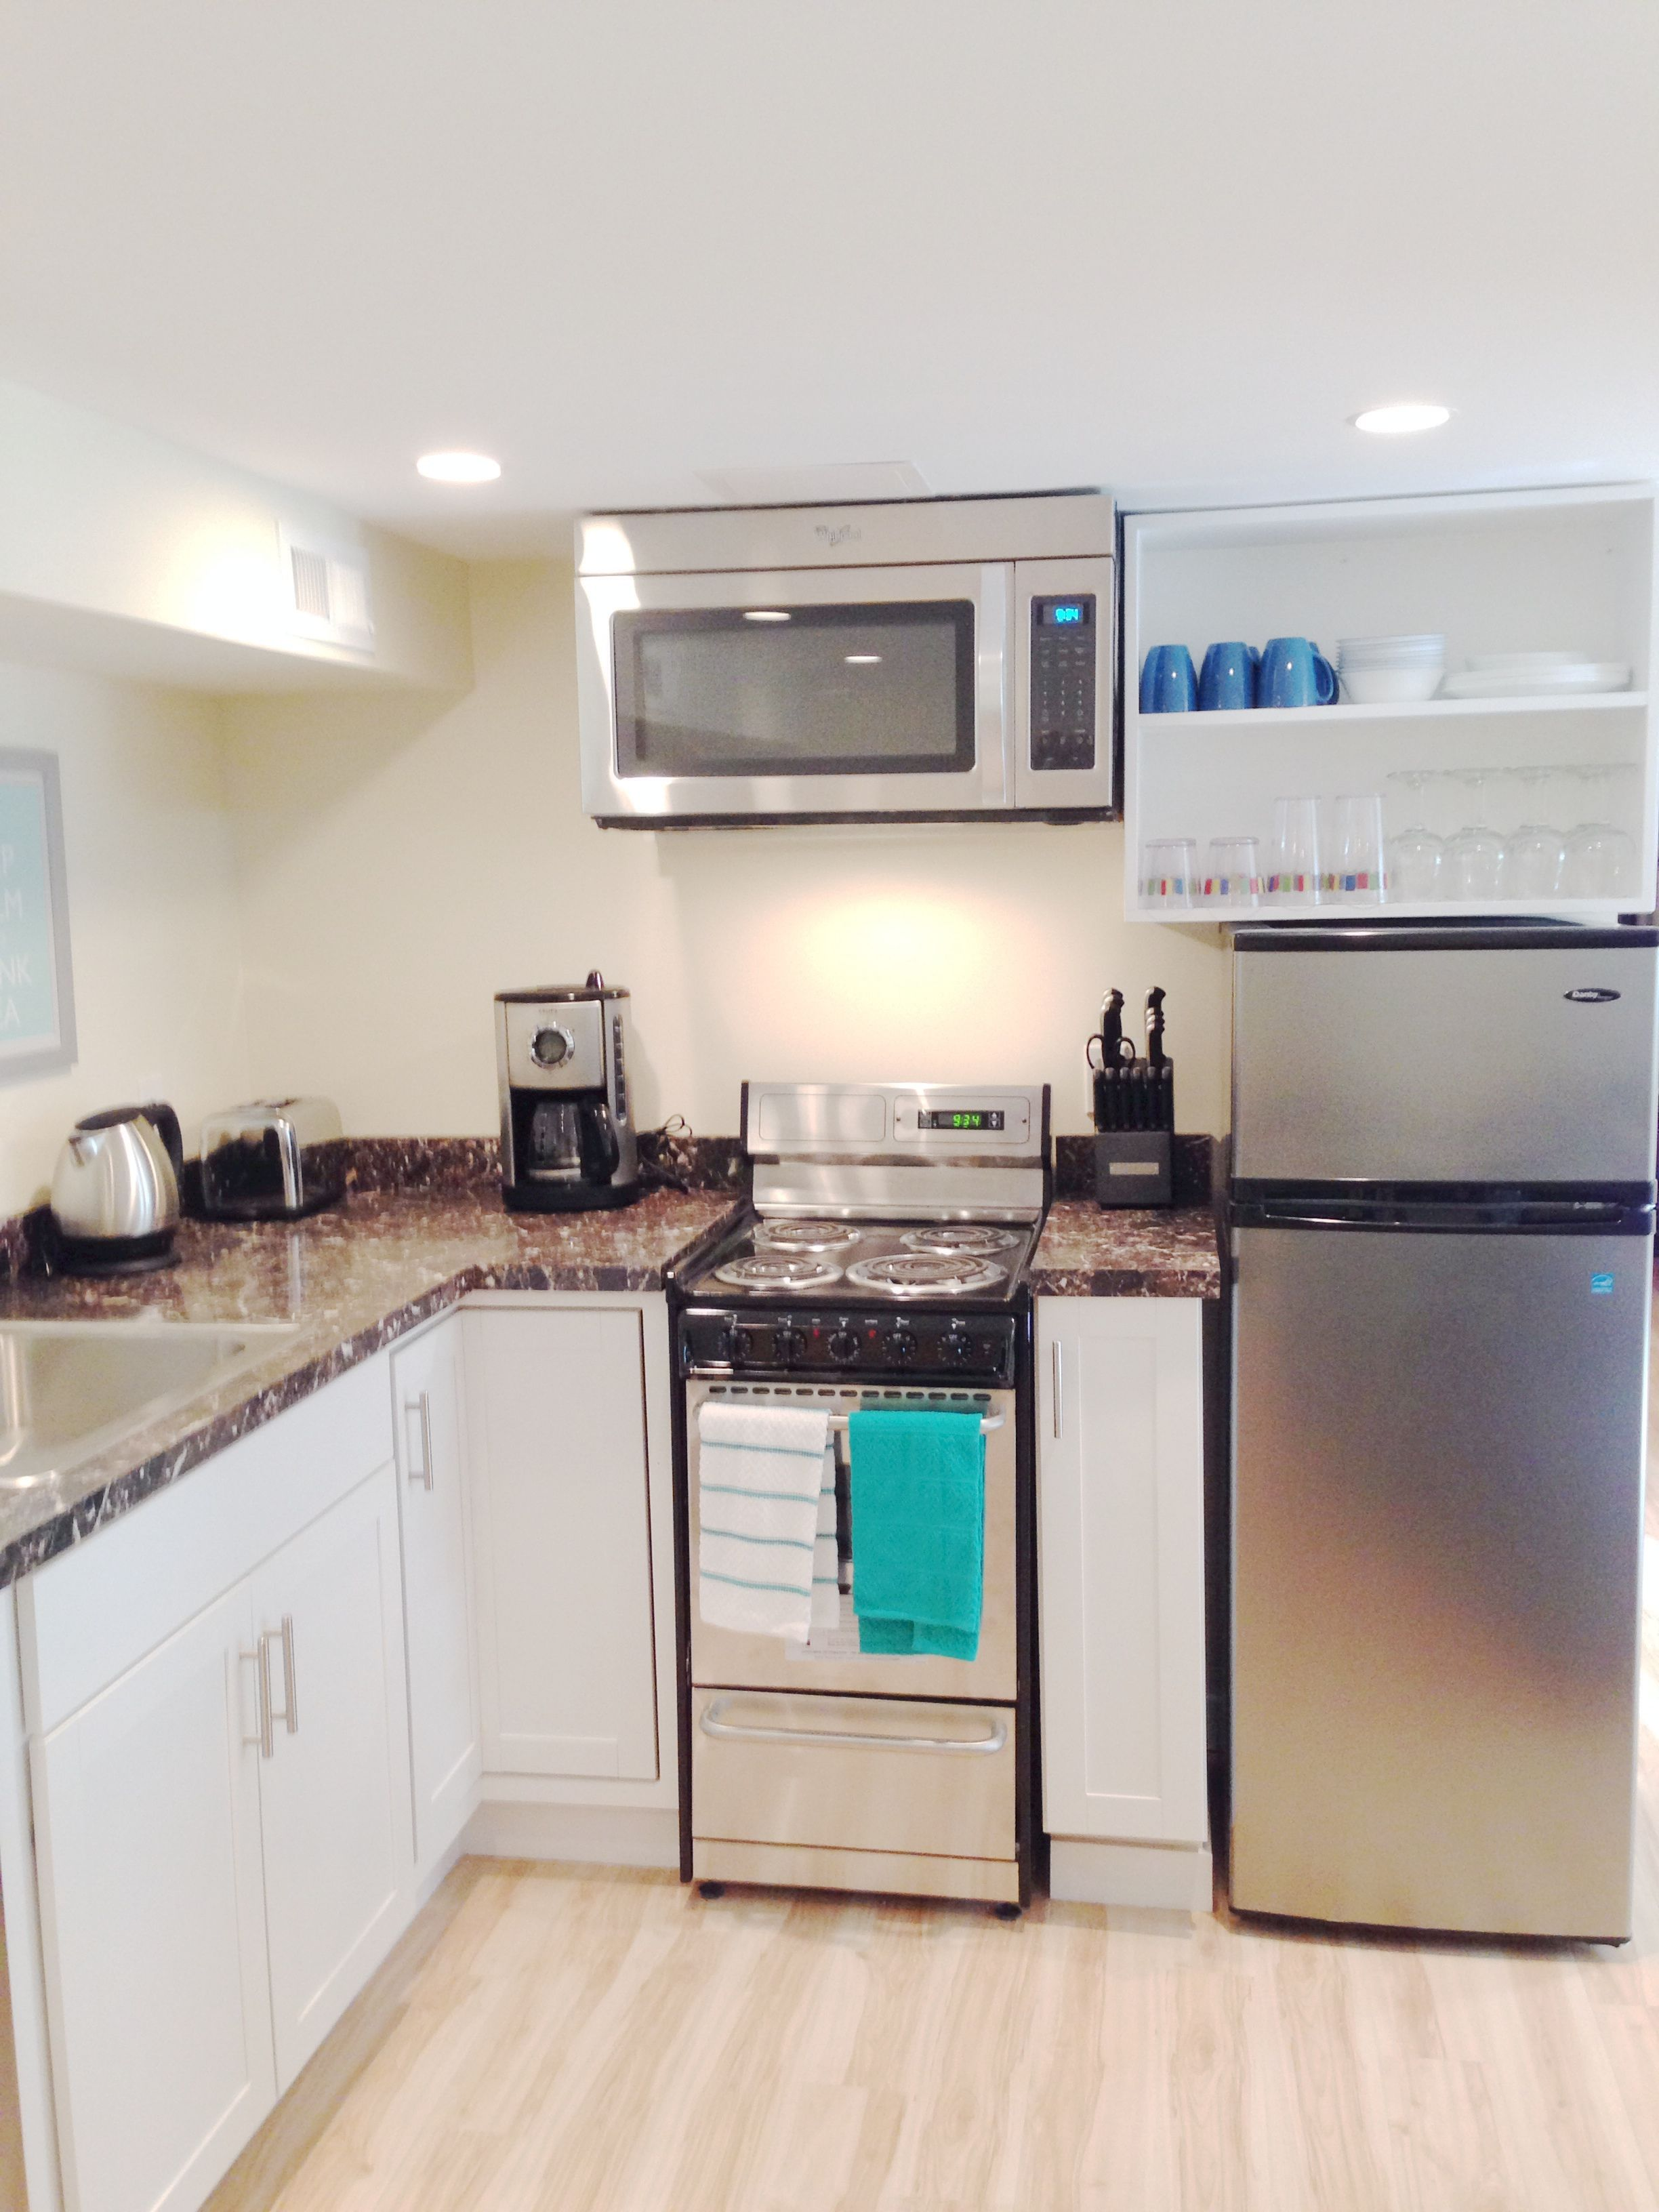 Kitchenette. Small Kitchen Design. Mini Appliances. Seattle Basement Remodel.  Vacation Rental.